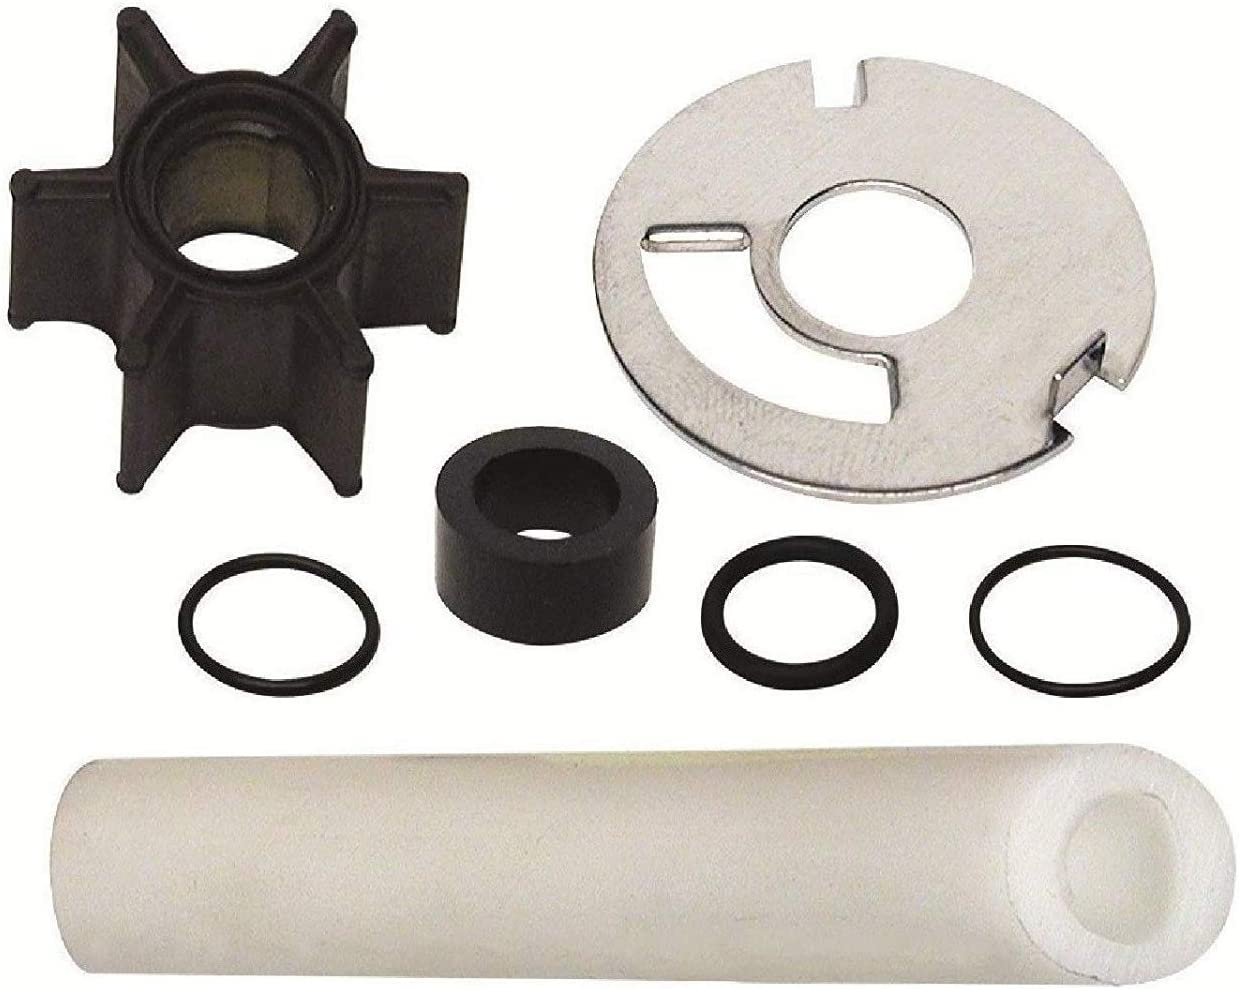 "GLM Water Pump Impeller Kit for Mercury 4, 4.5, 6, 7.5, 9.8 hp with .456"" Inside Diameter Impeller, Replaces 47-89981, Read Item Description for Exact Applications Before Ordering"